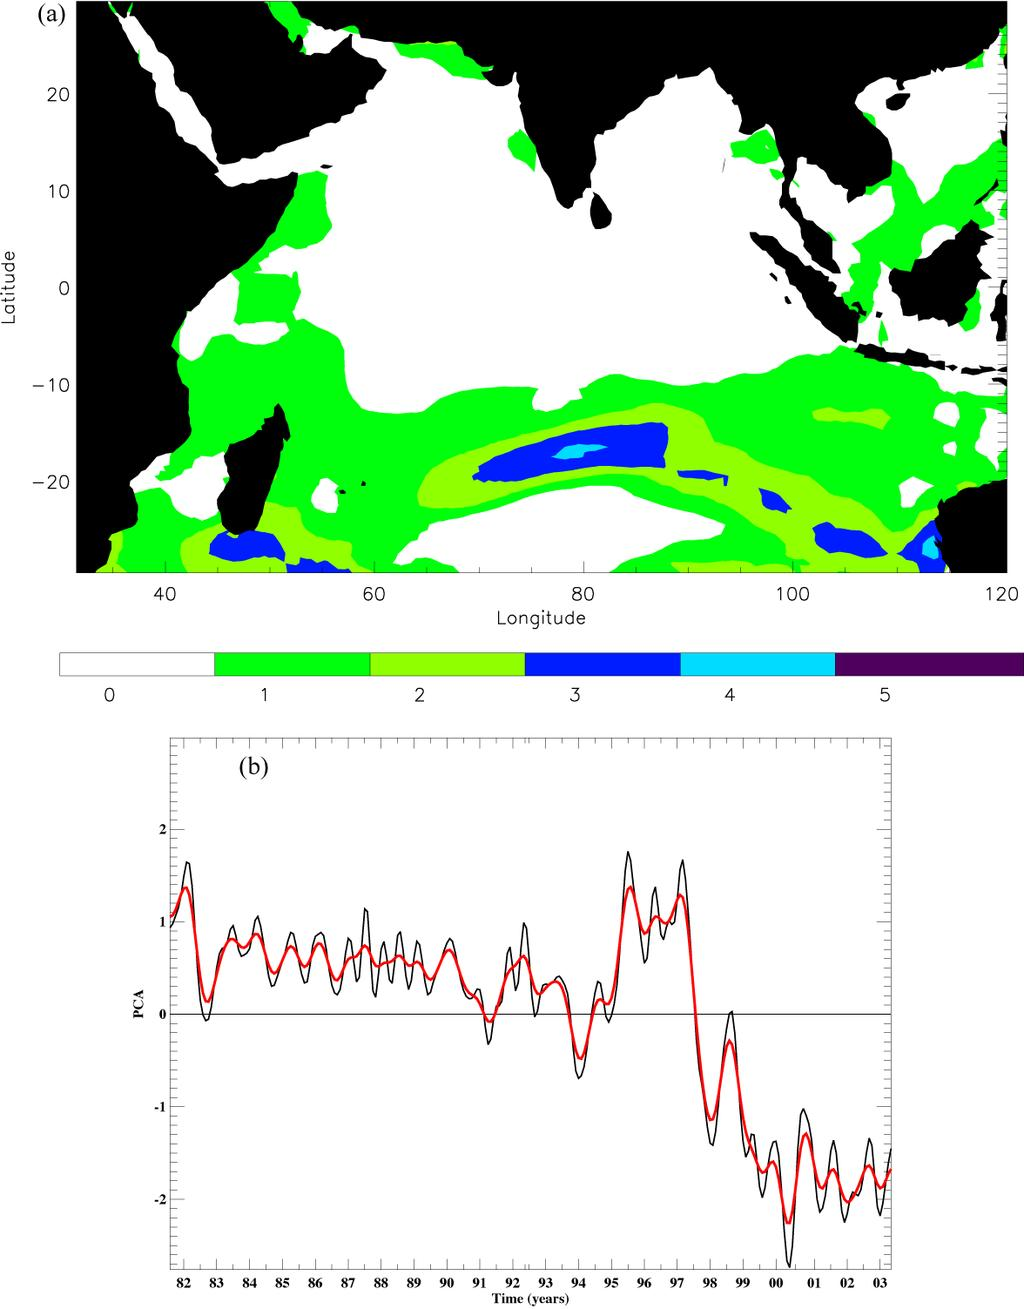 FIG. 9 First EOF (18.4% of the variance) of sensible heat flux for the Indian Ocean. The spatial pattern (a) and time series (b) are scaled by the mean JJAS principal component.